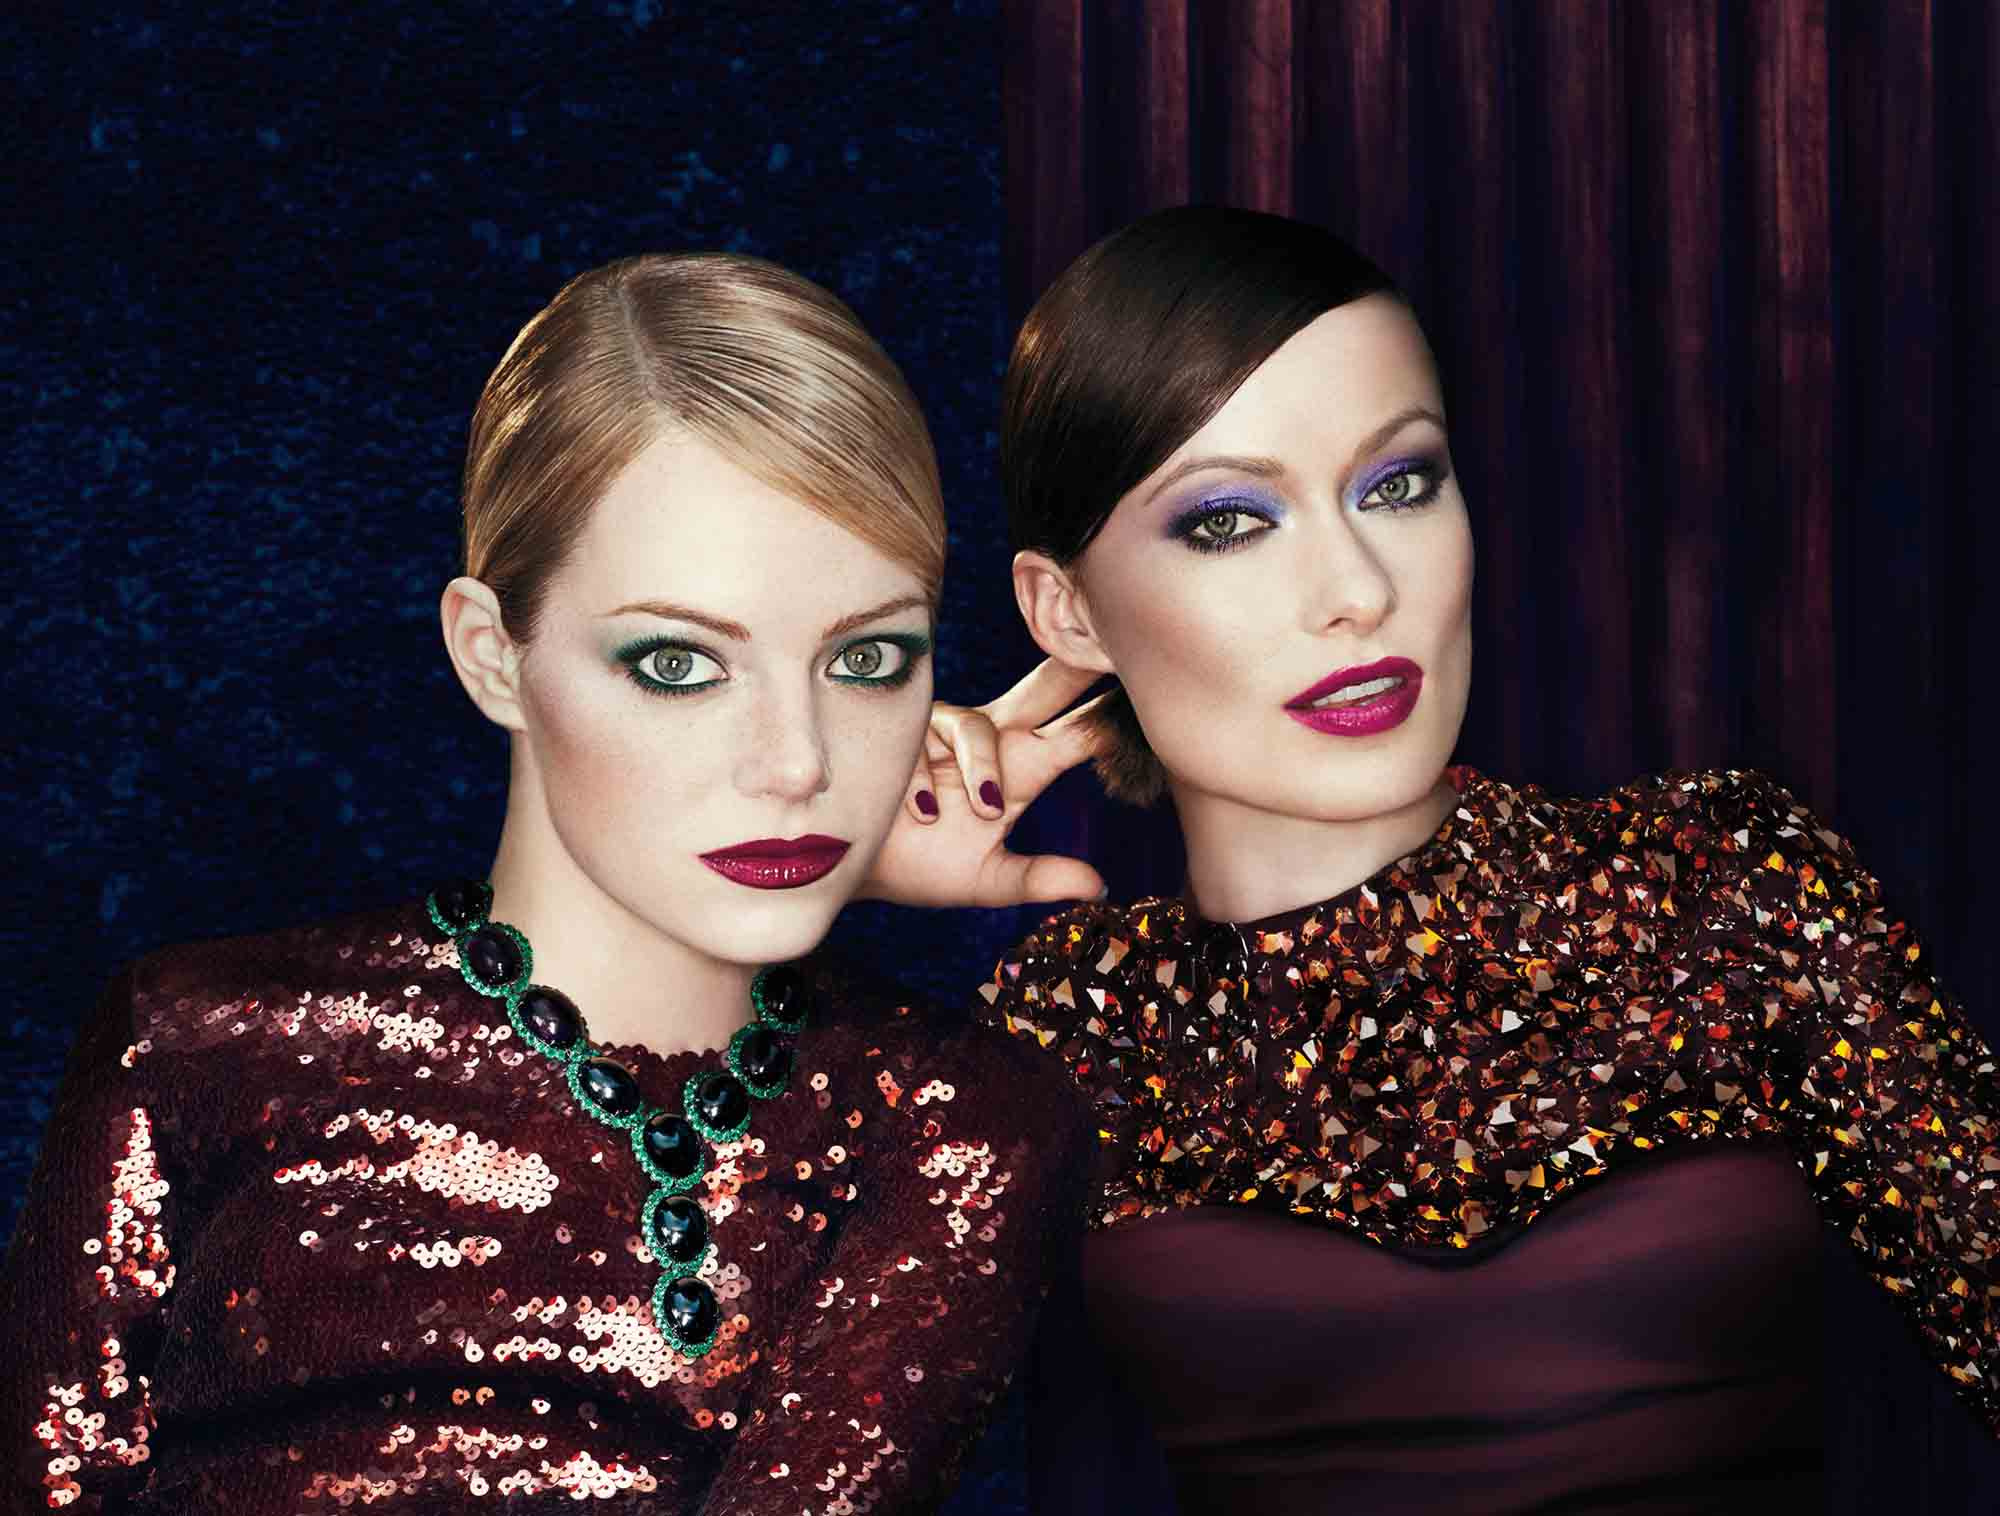 revlon the evening opulence by gucci westman